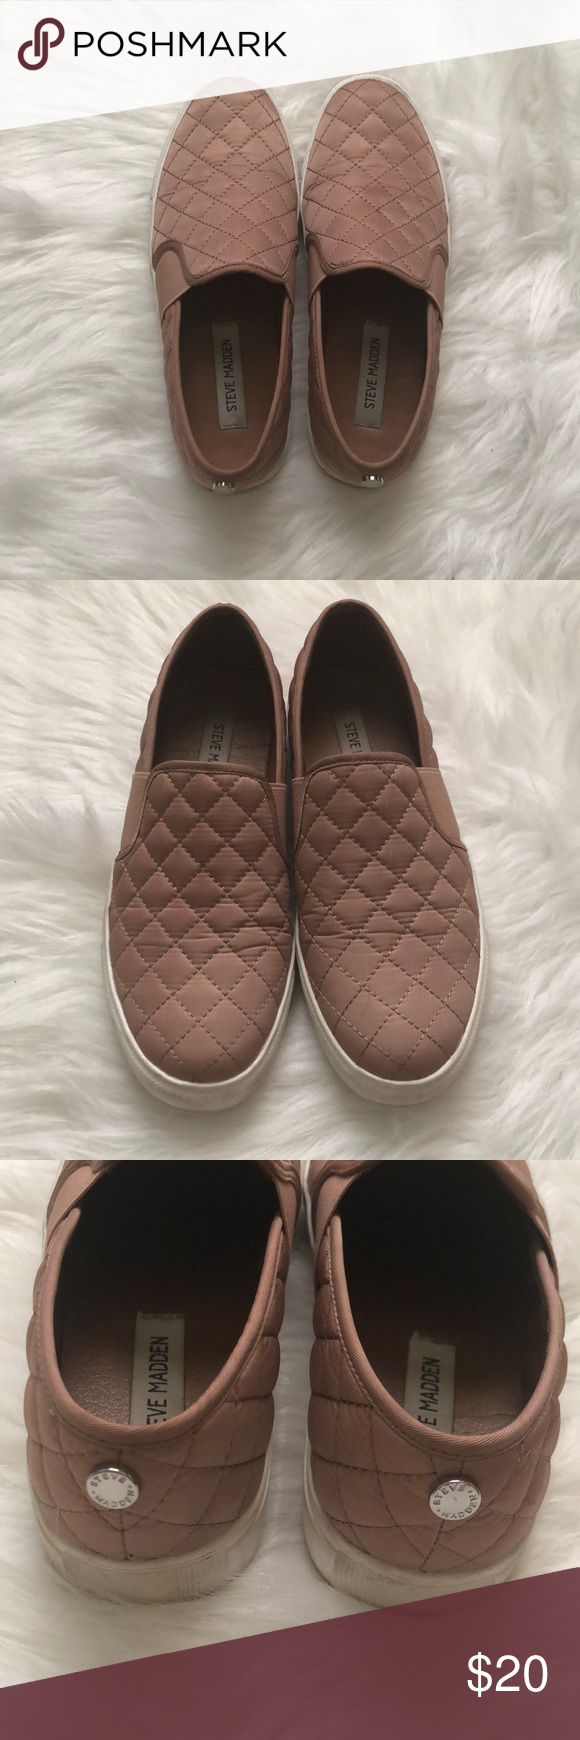 590bc53cf71 Steve Madden Shoes Lightly used Steve Madden shoes in rose gold. Steve  Madden Shoes Flats